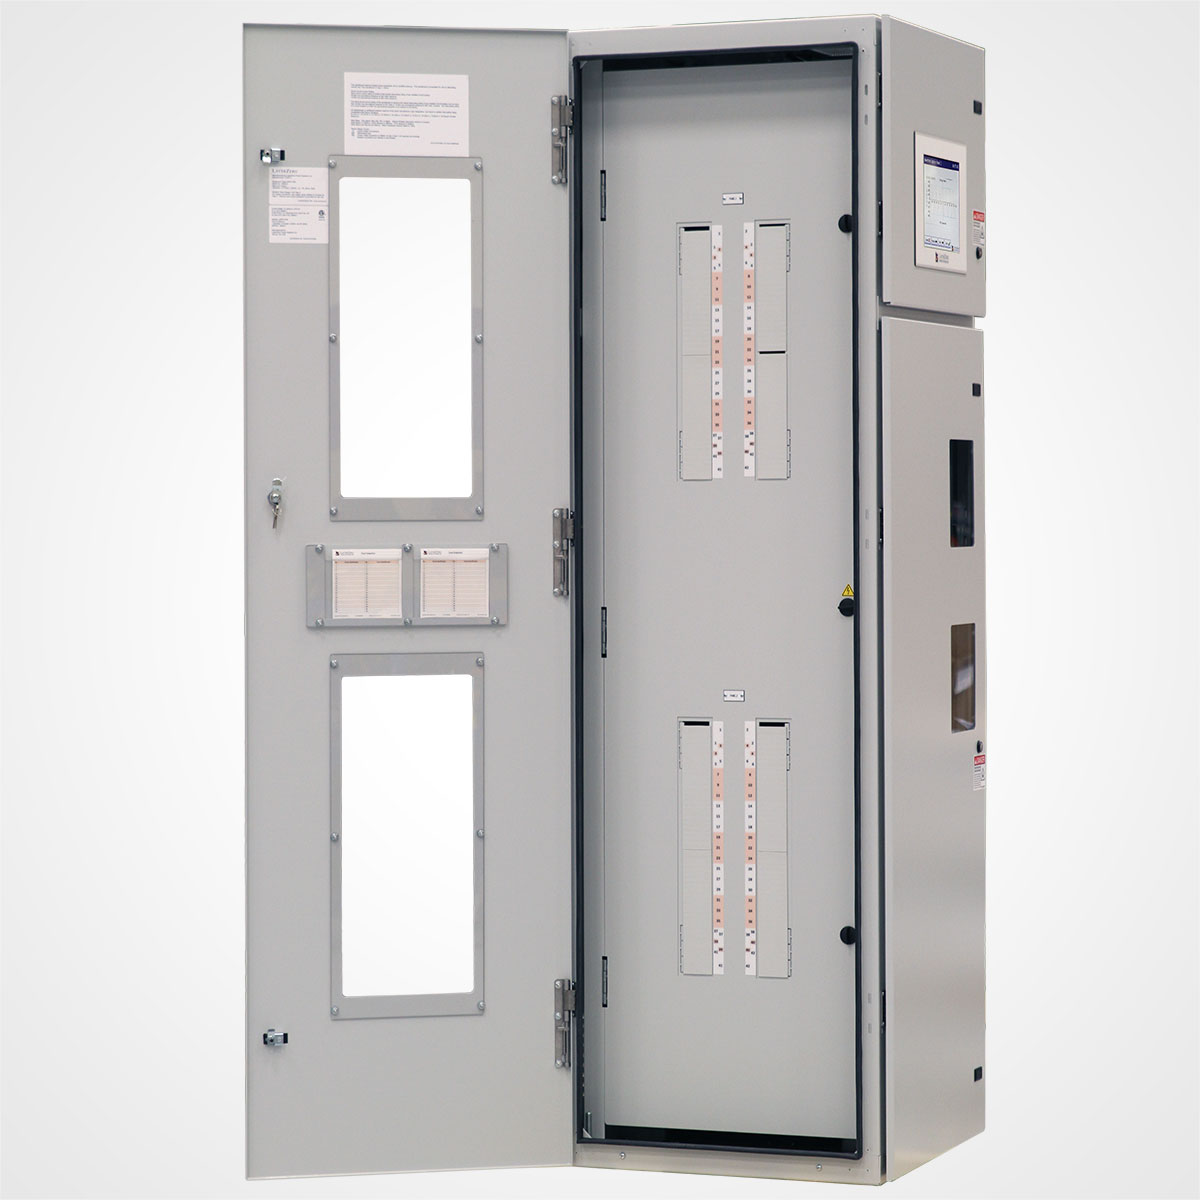 LayerZero Series 70: eRPP-FS SafePanel Section.